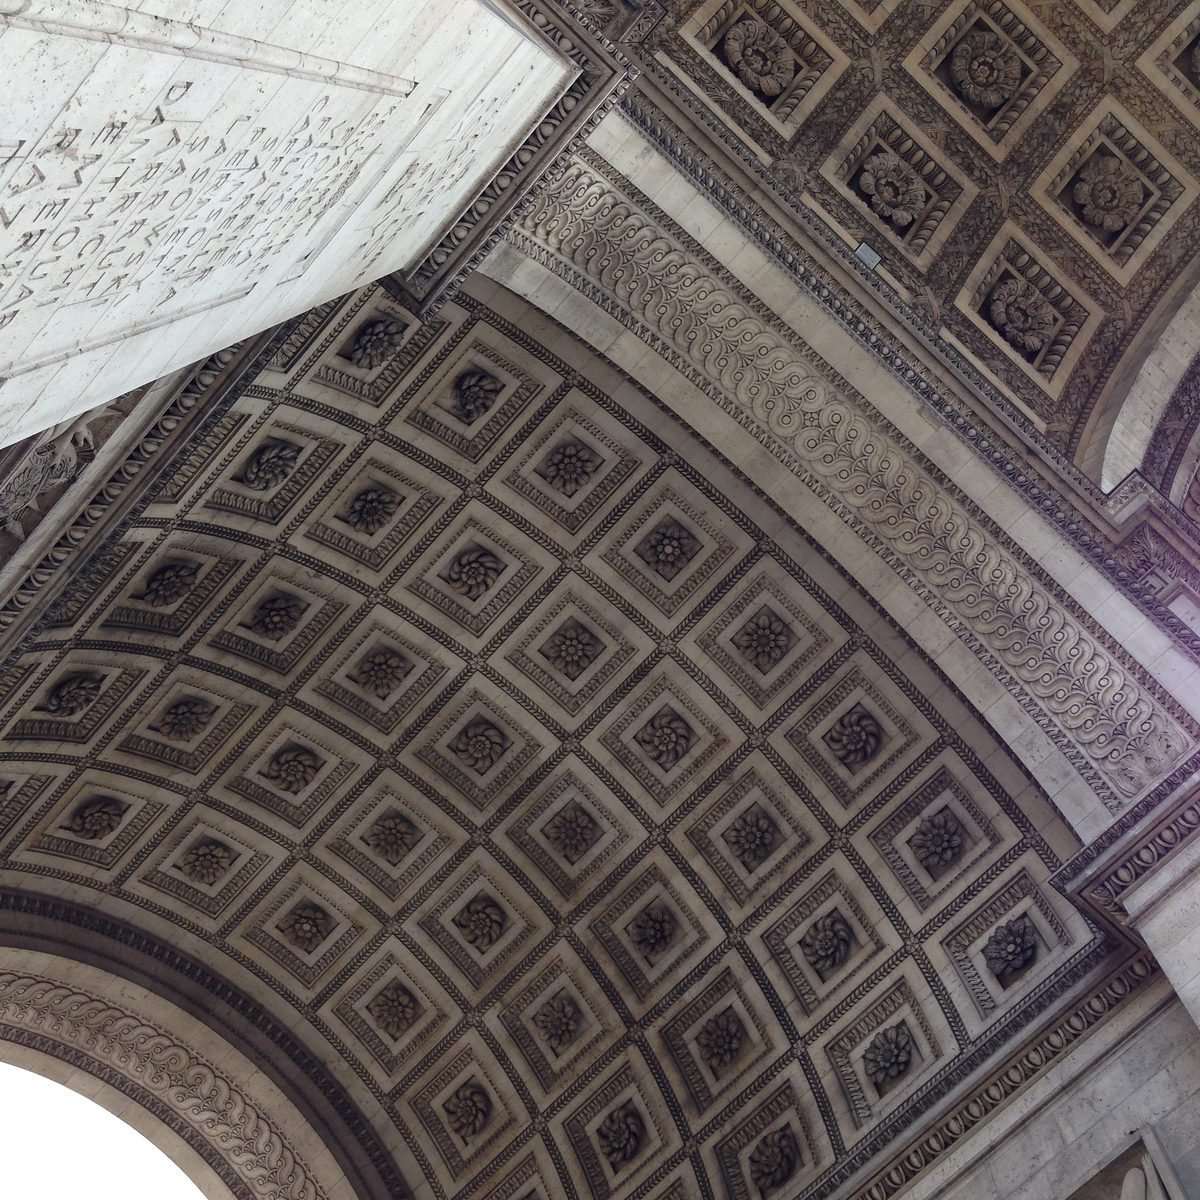 The Beautiful Arched Ceilings of the Arc de Triomphe in Paris, France